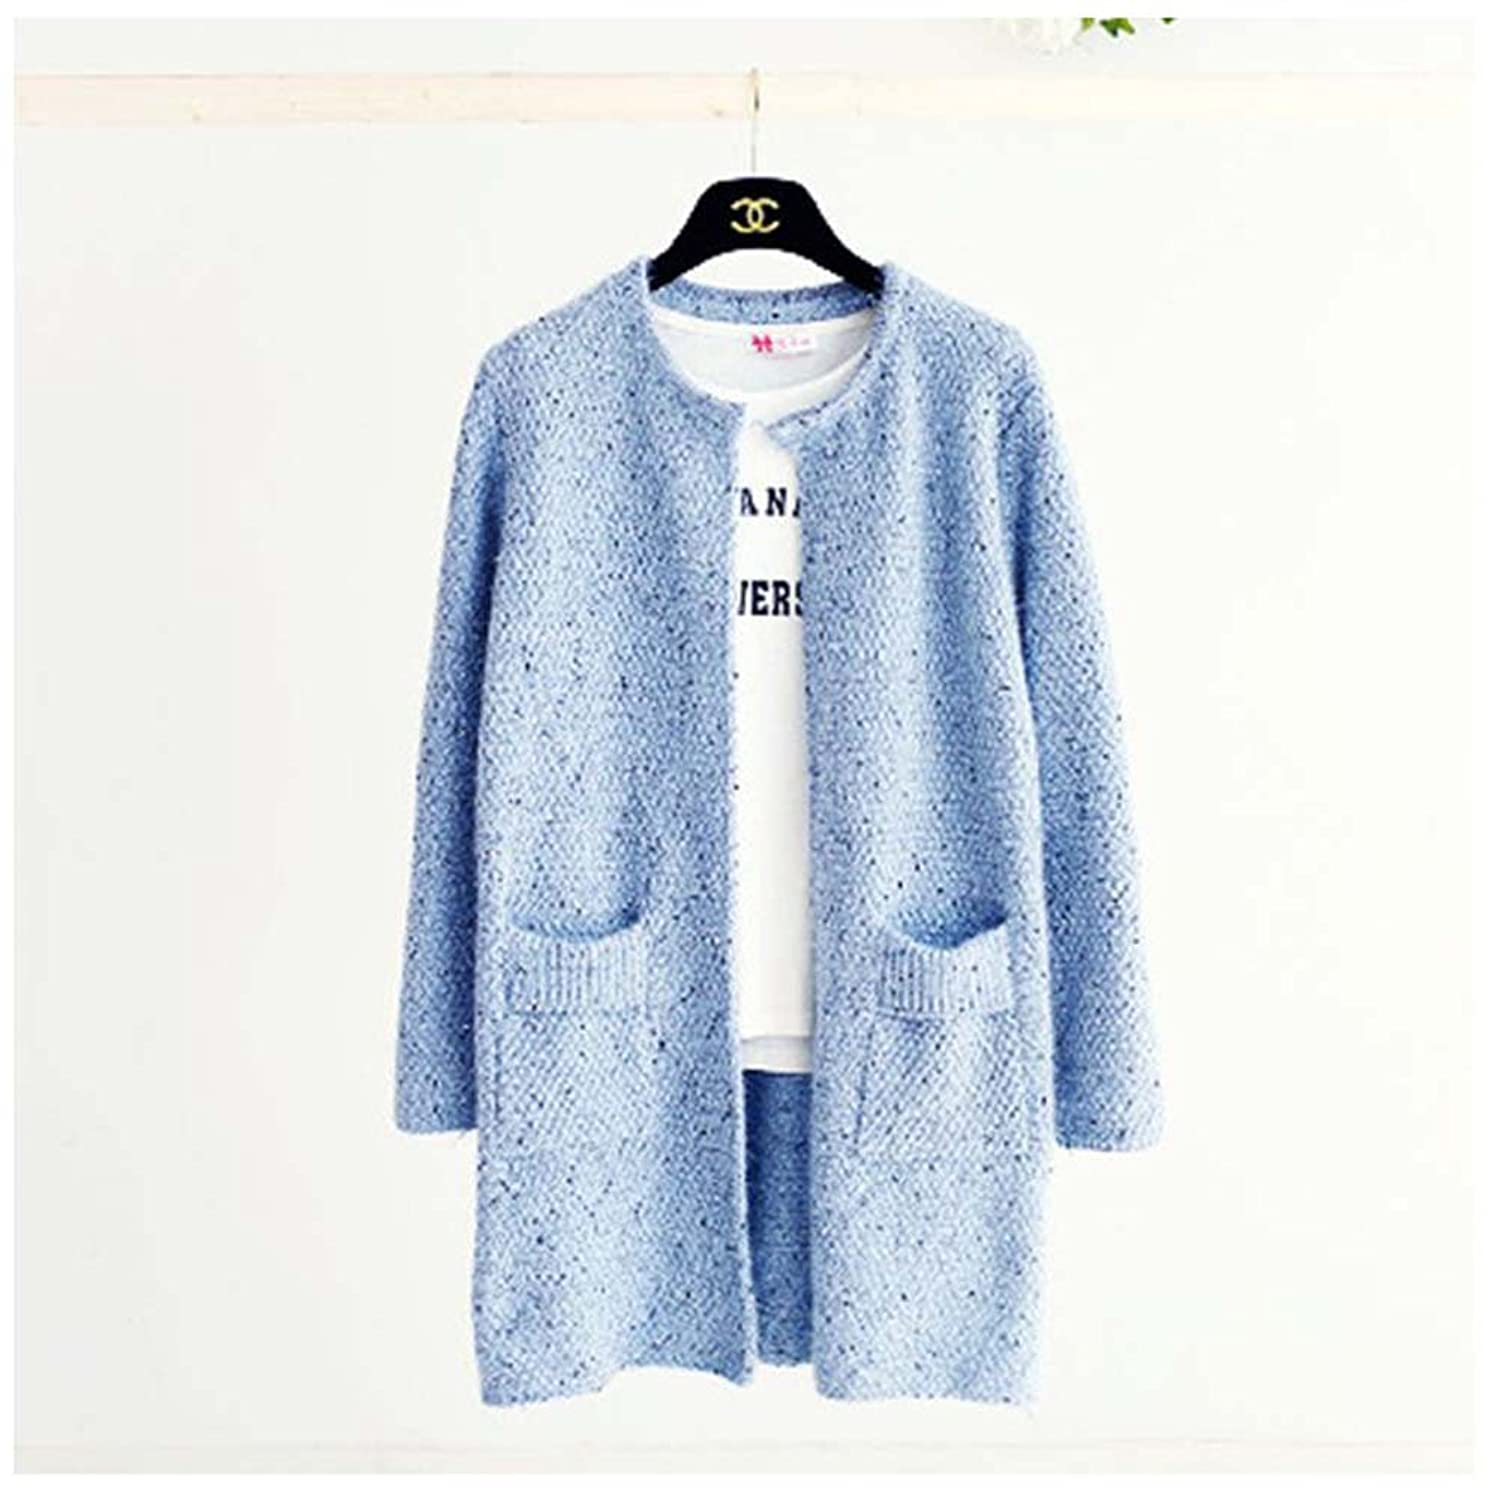 WSHINE Women's Sweater Dot Knit Cardigan Knitwear Mid-long Coat Jackets